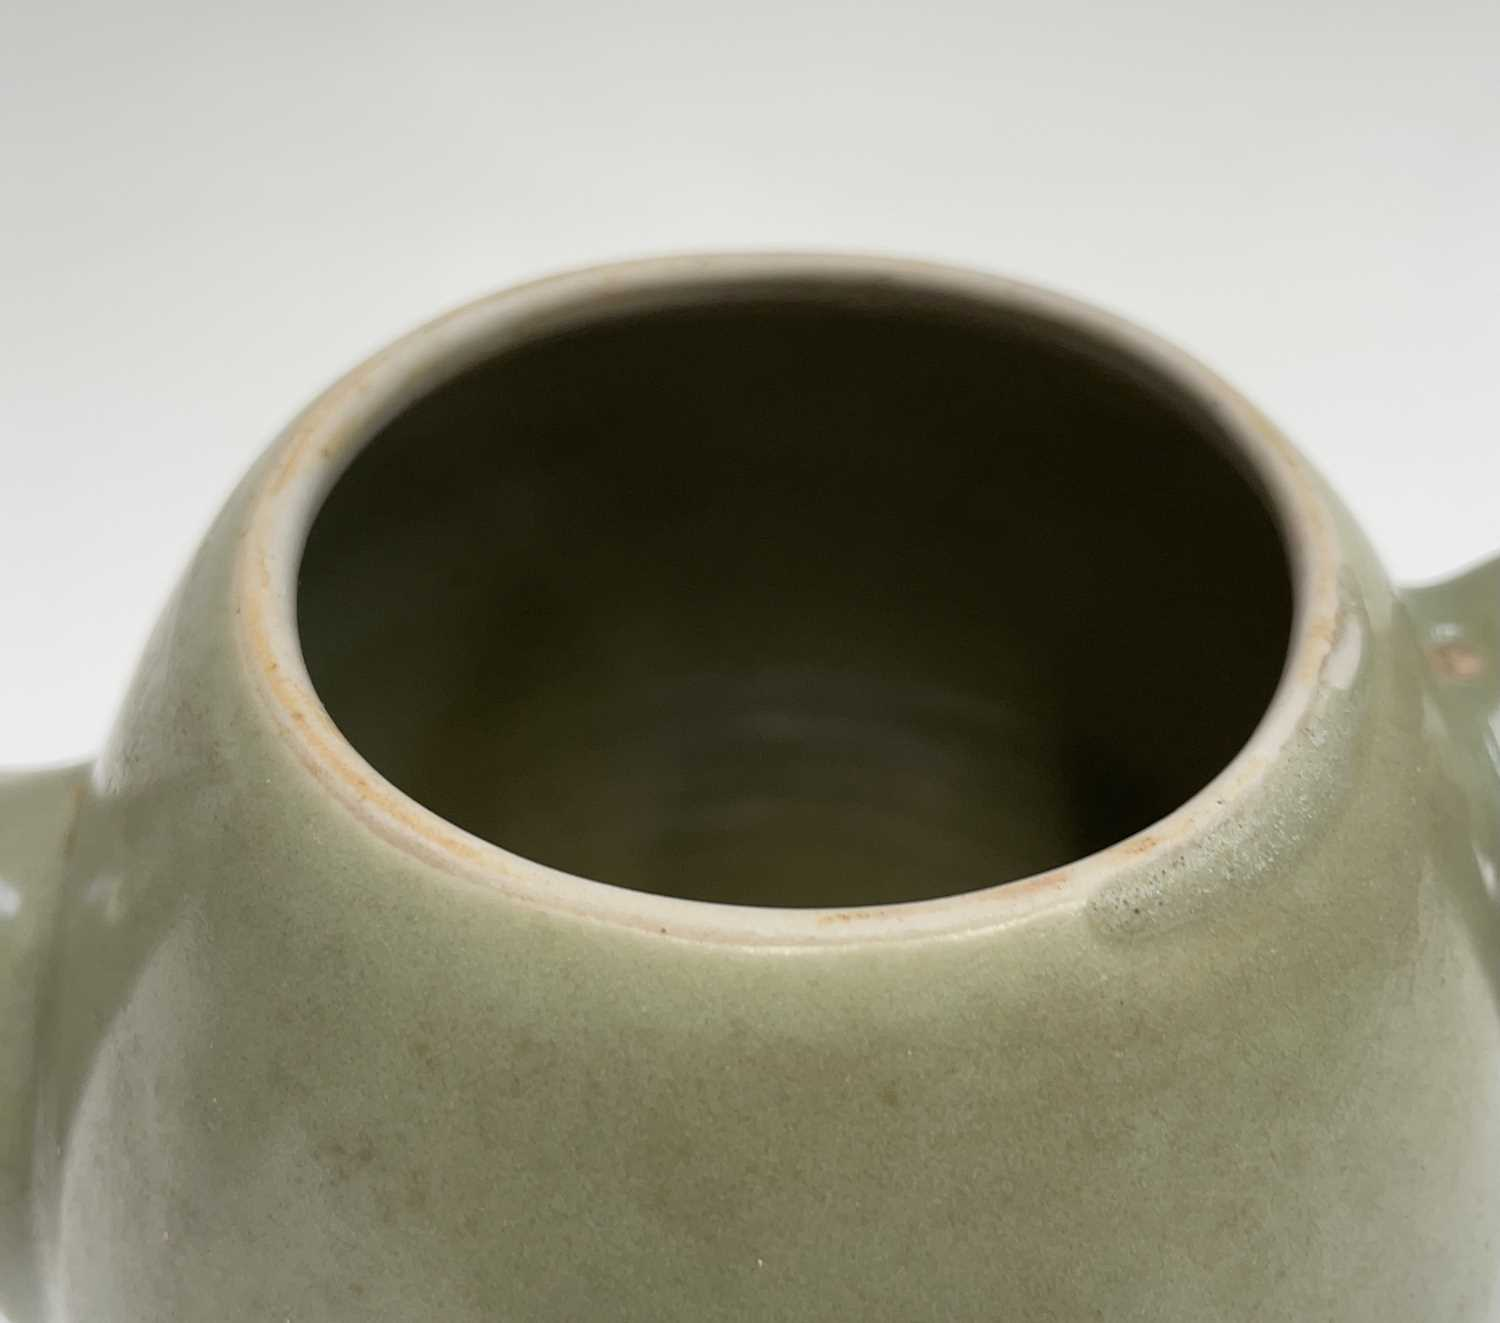 A Leach Pottery, St Ives, celadon glazed teapot, height 14cm, with impressed Leach seal and initials - Image 3 of 11